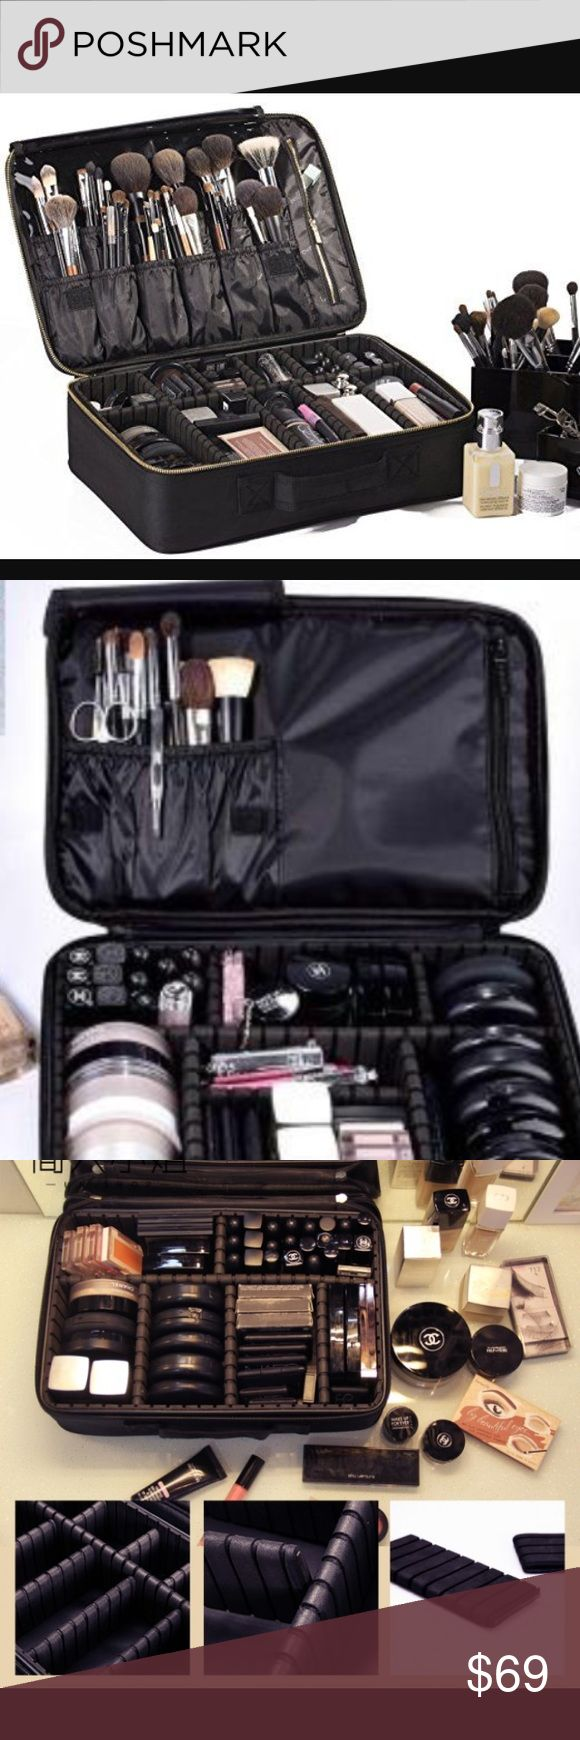 Makeup bag/ great for organization or travel Are you OCD- with being clean and o...